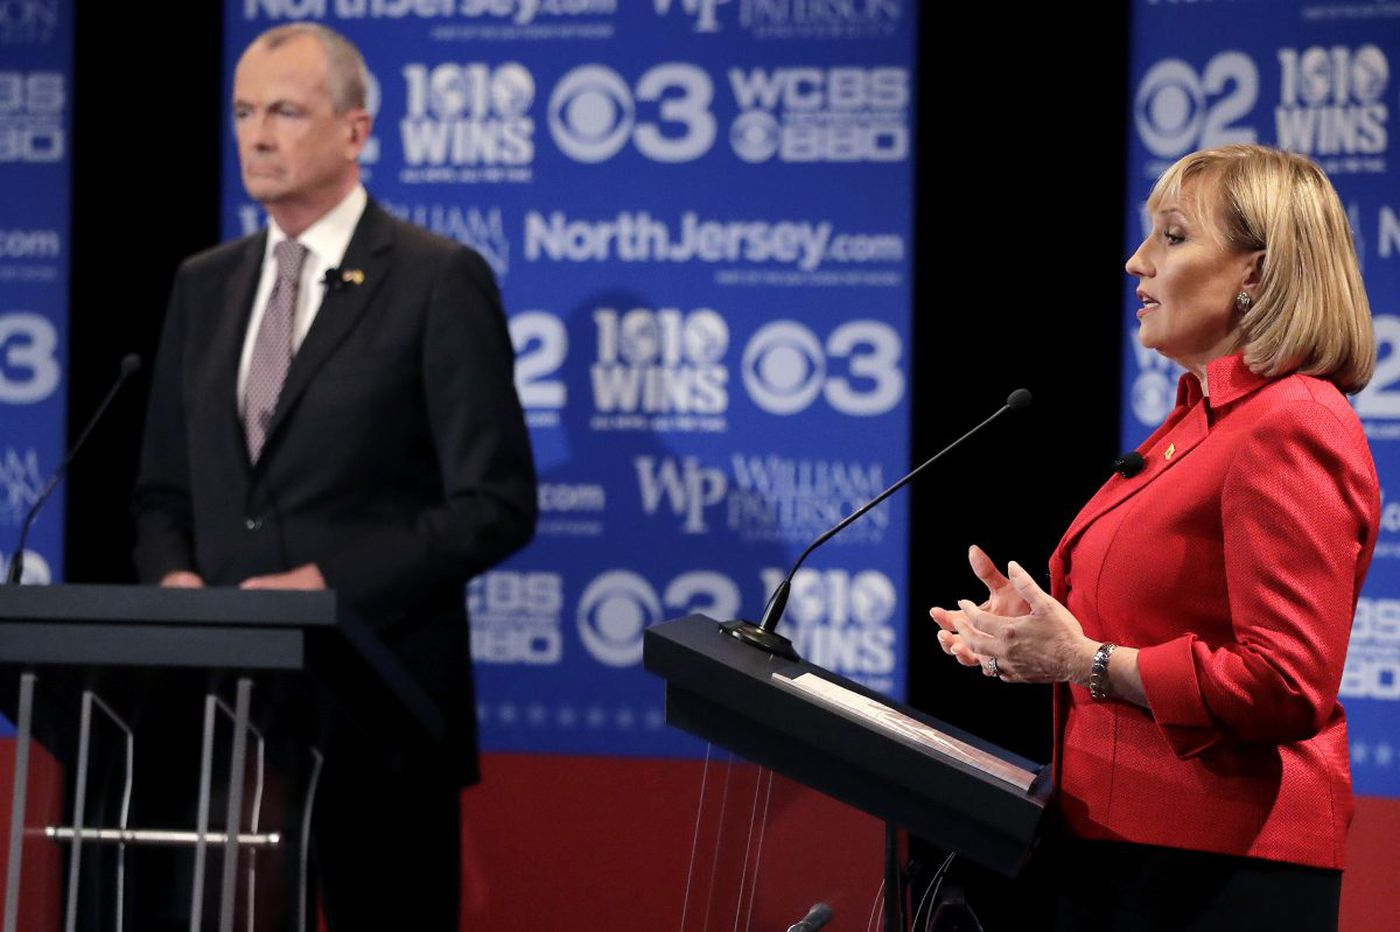 N.J. governor's race: Can Murphy, Guadagno deliver on pension, tax promises?